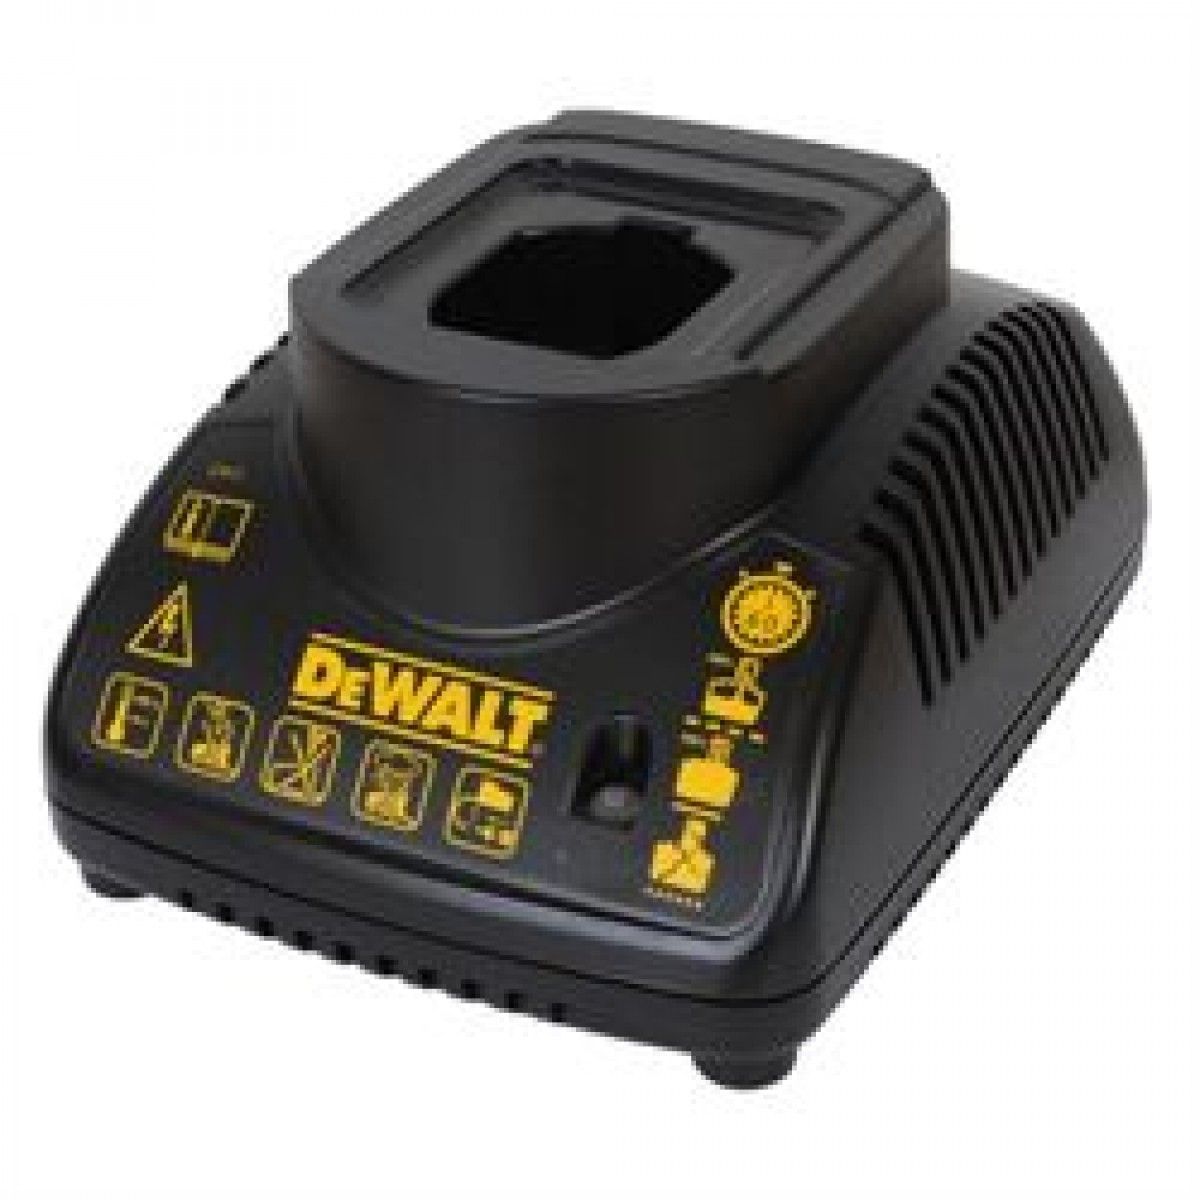 Watch additionally DW941K 2 further Stanley Fatmax Tstak System 165674 further Watch further Lader 7 2v 14 201p. on de walt drill